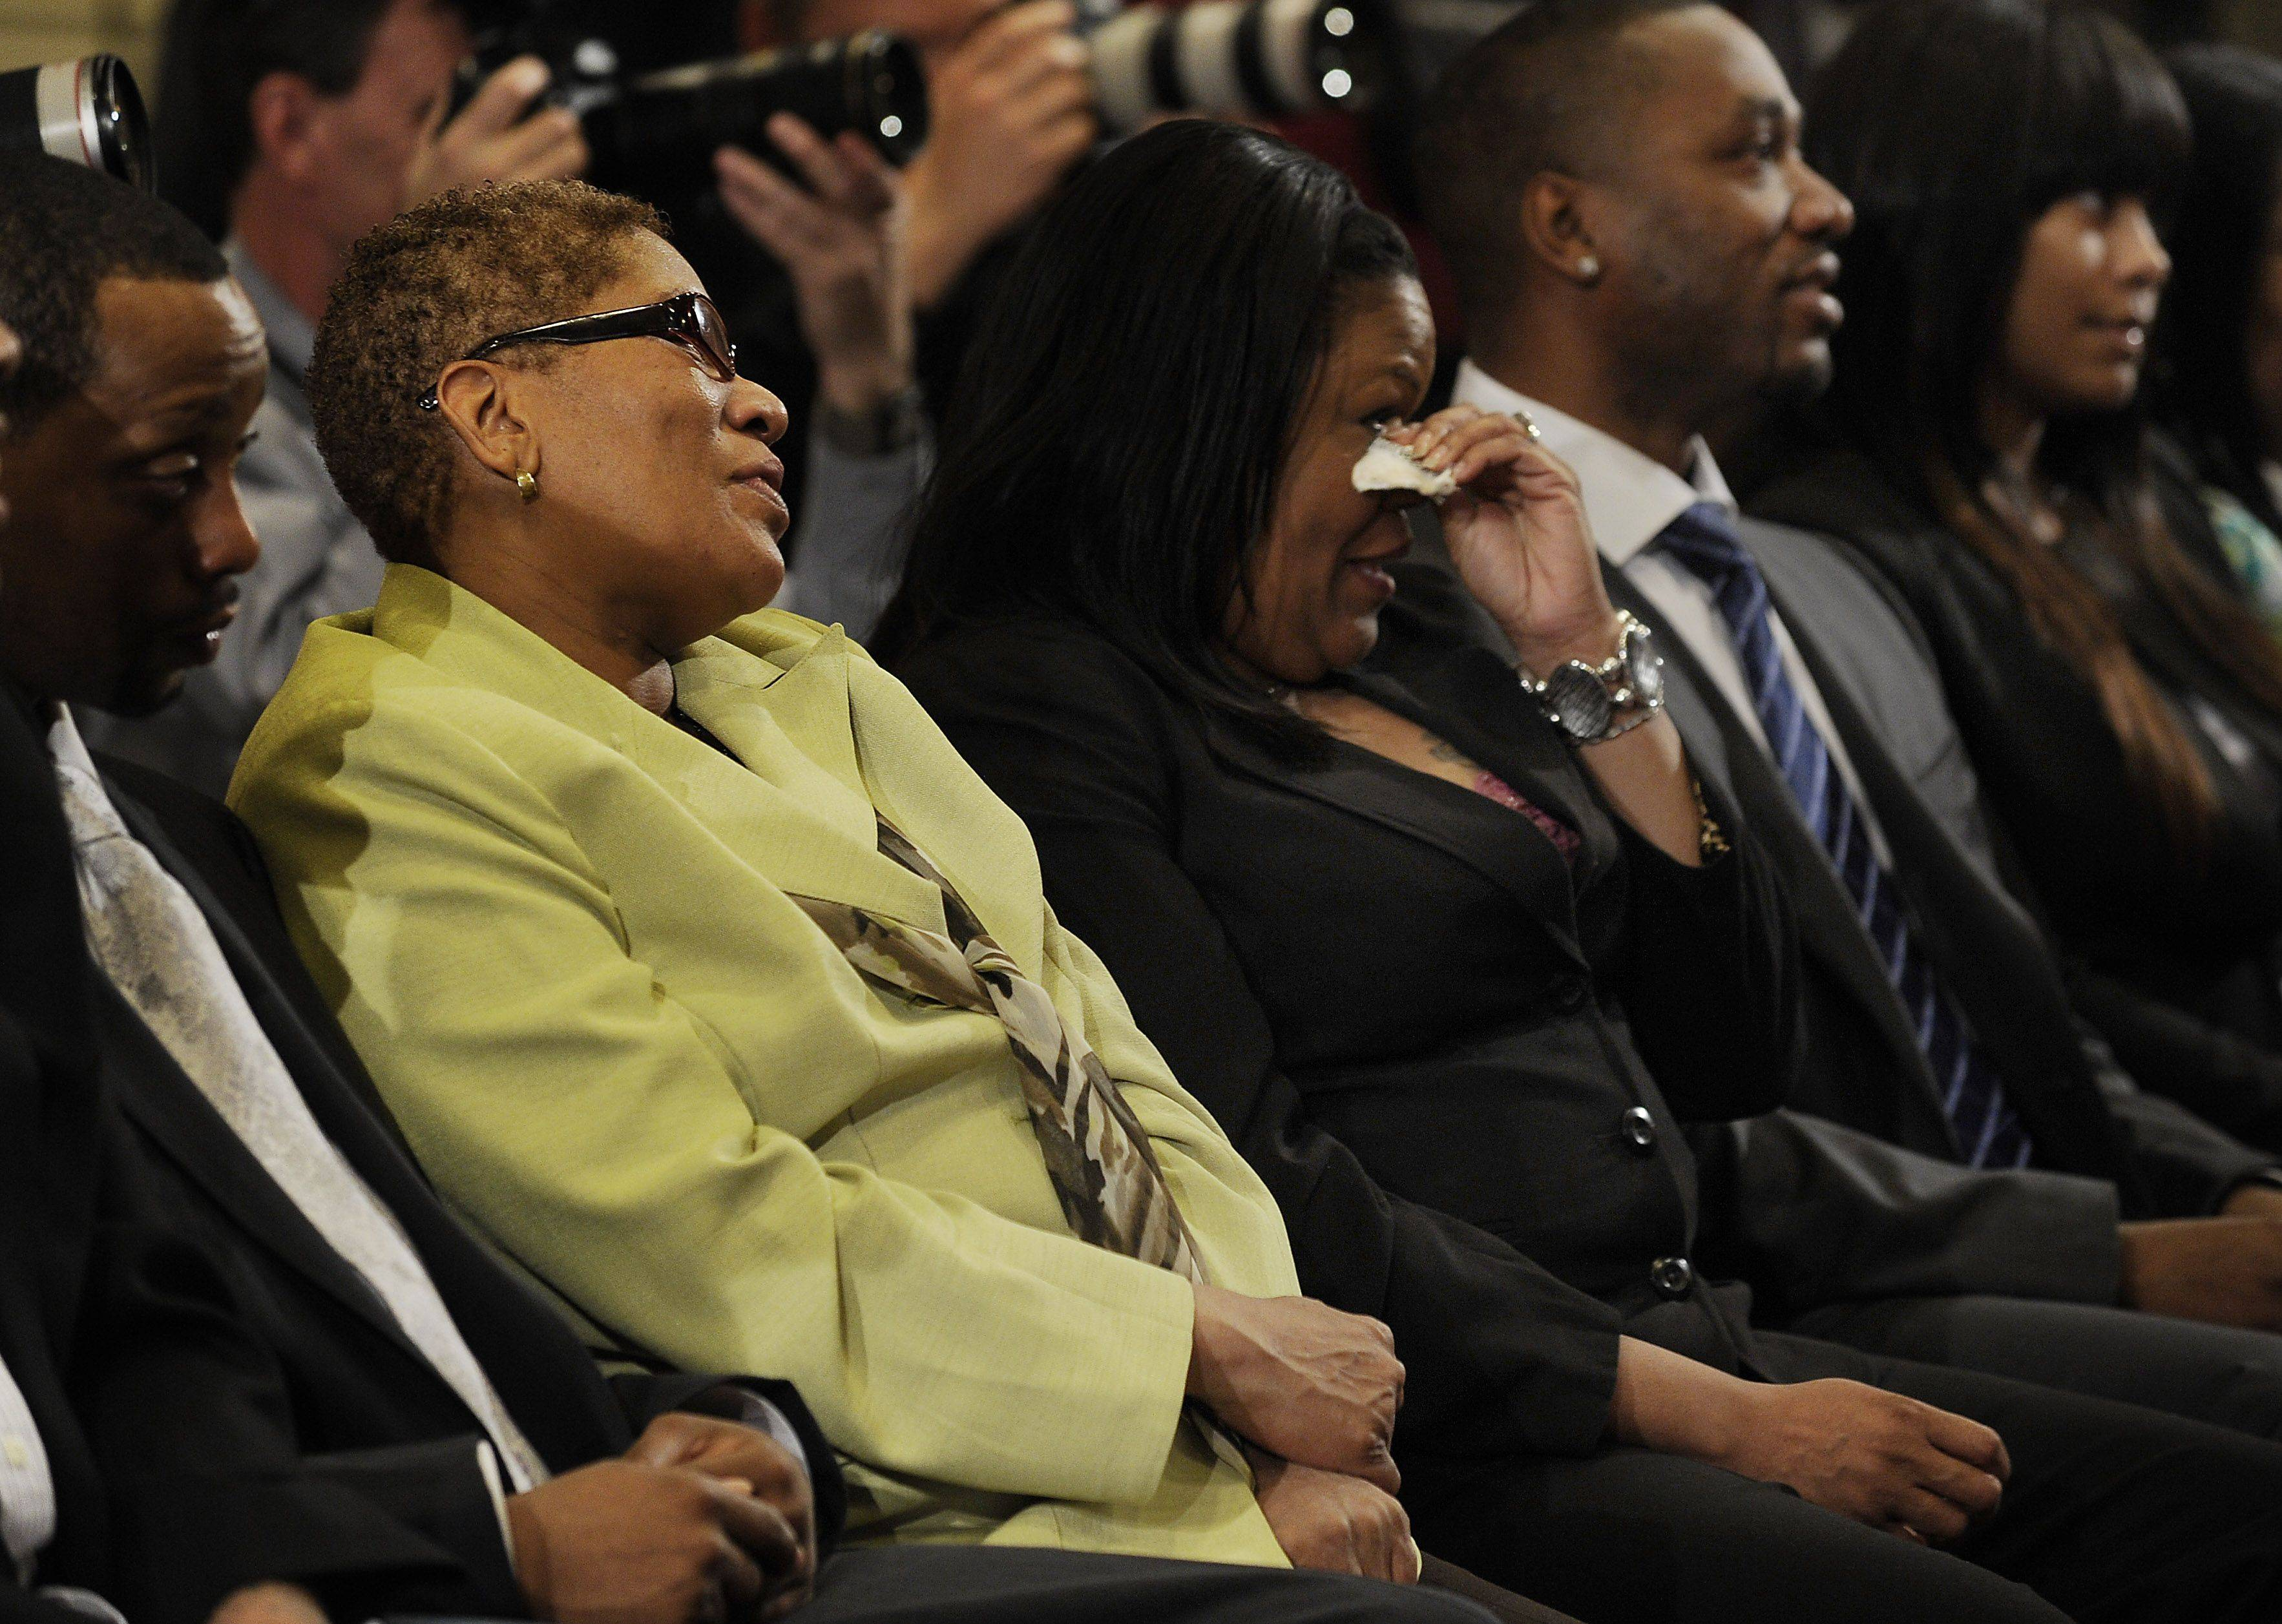 Derrick Rose is named as the NBA's MVP in Lincolnshire on Tuesday. On hand was his mom, Brenda Rose, left, looking on while other family members cry tears of joy.